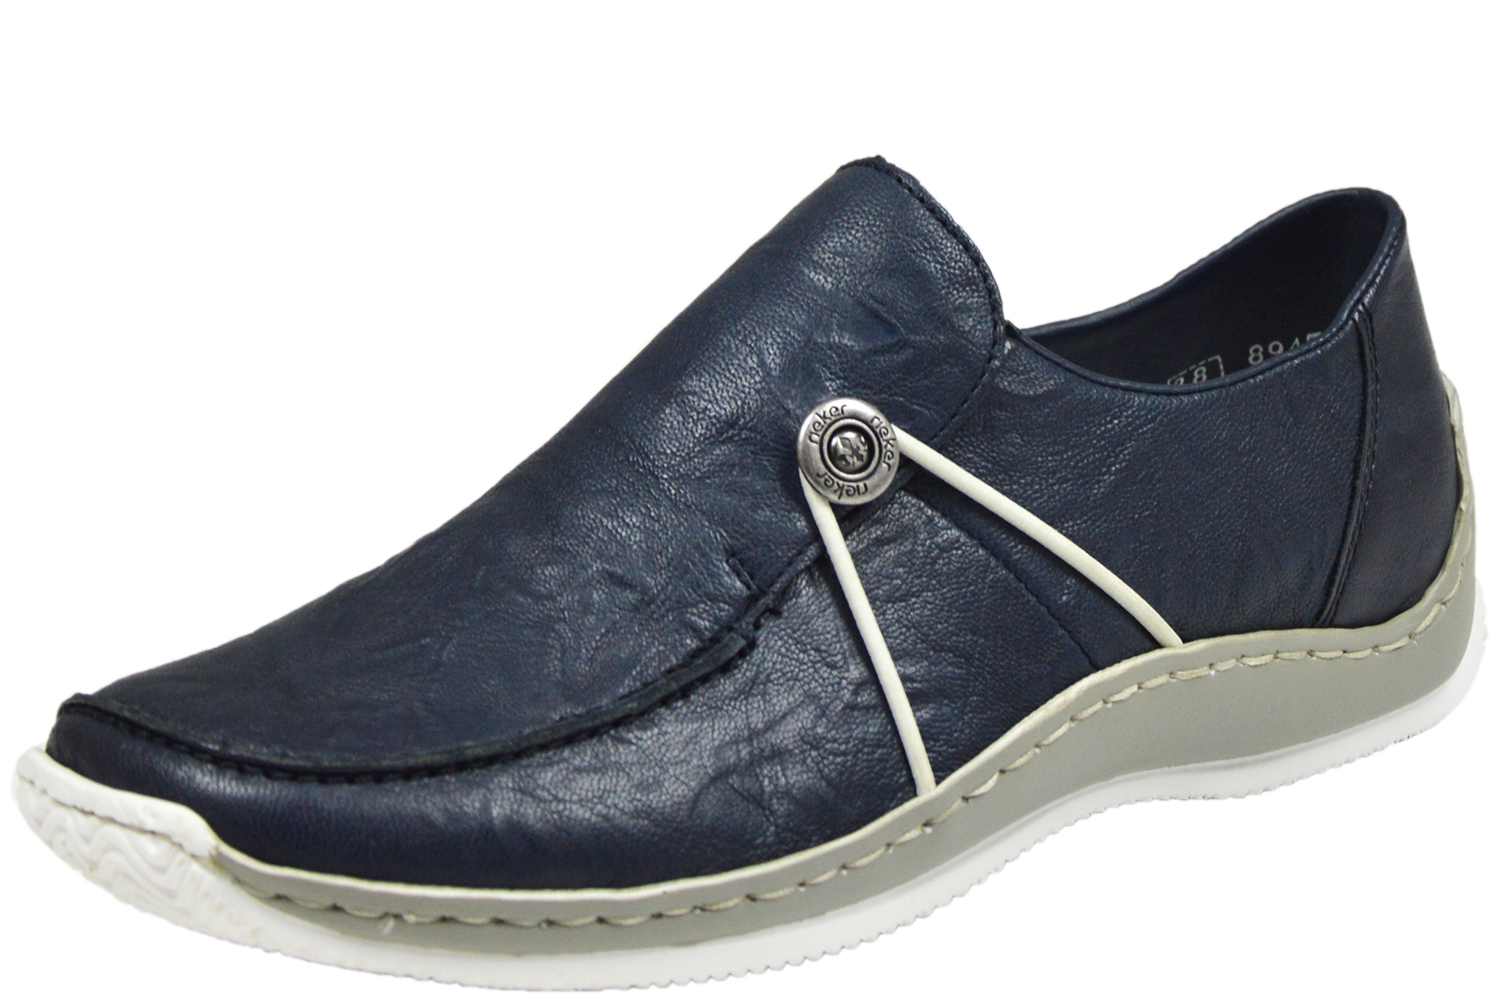 Rieker L1781 17 ANTISTRESS Damen Slipper blau